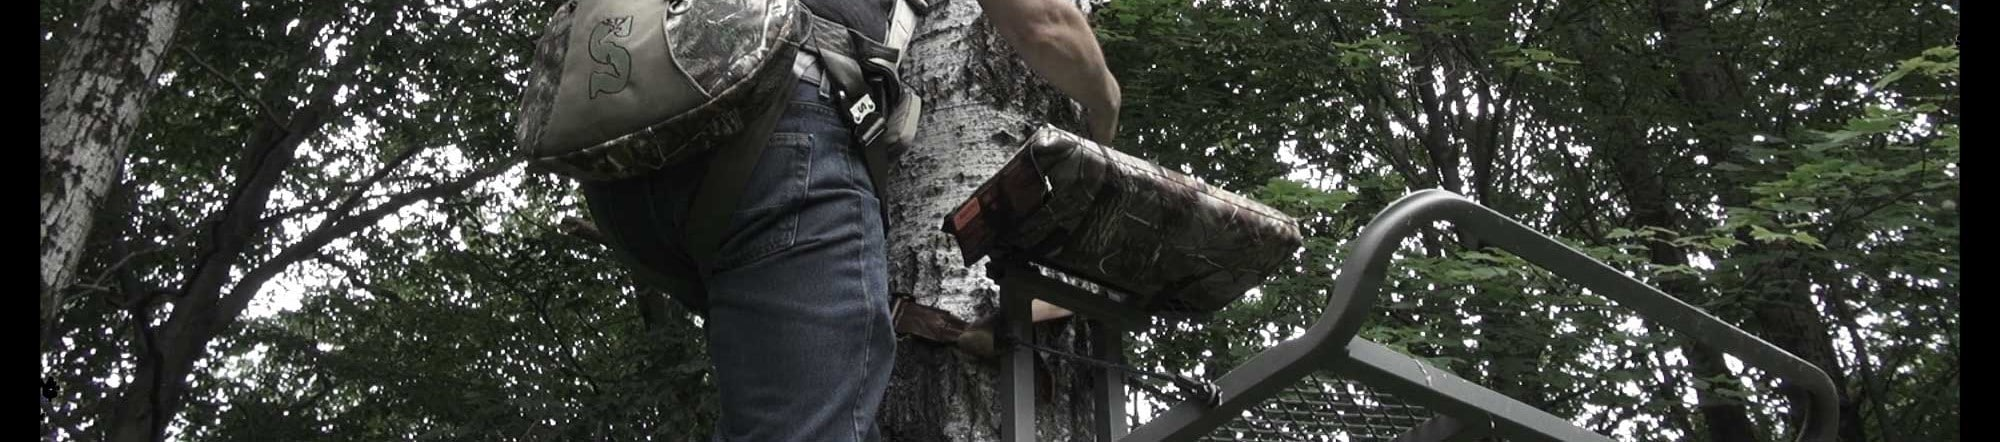 Best Climbing Tree Stands Reviewed in Detail